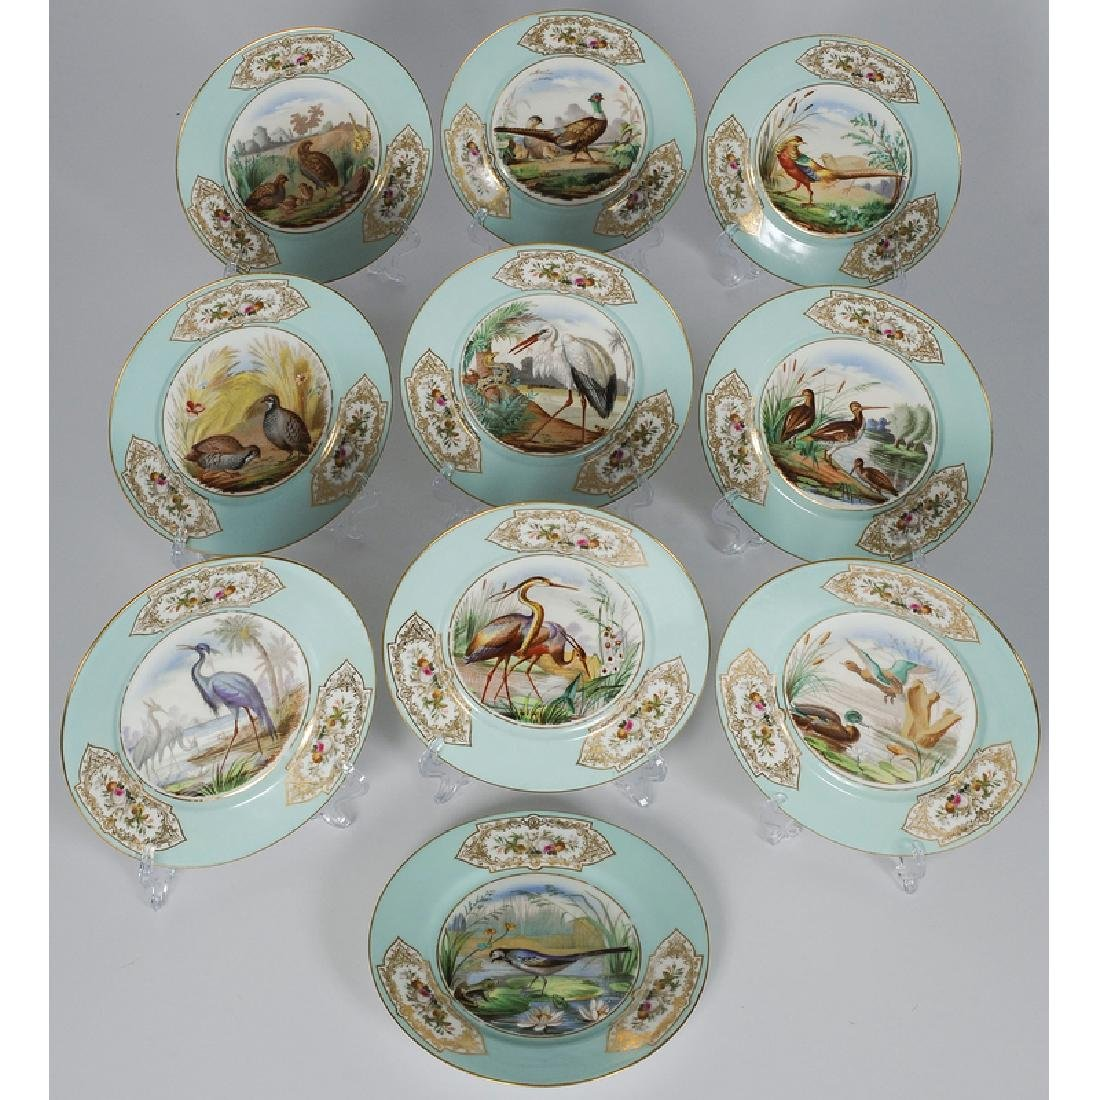 Porcelain Plates with Bird Scenes